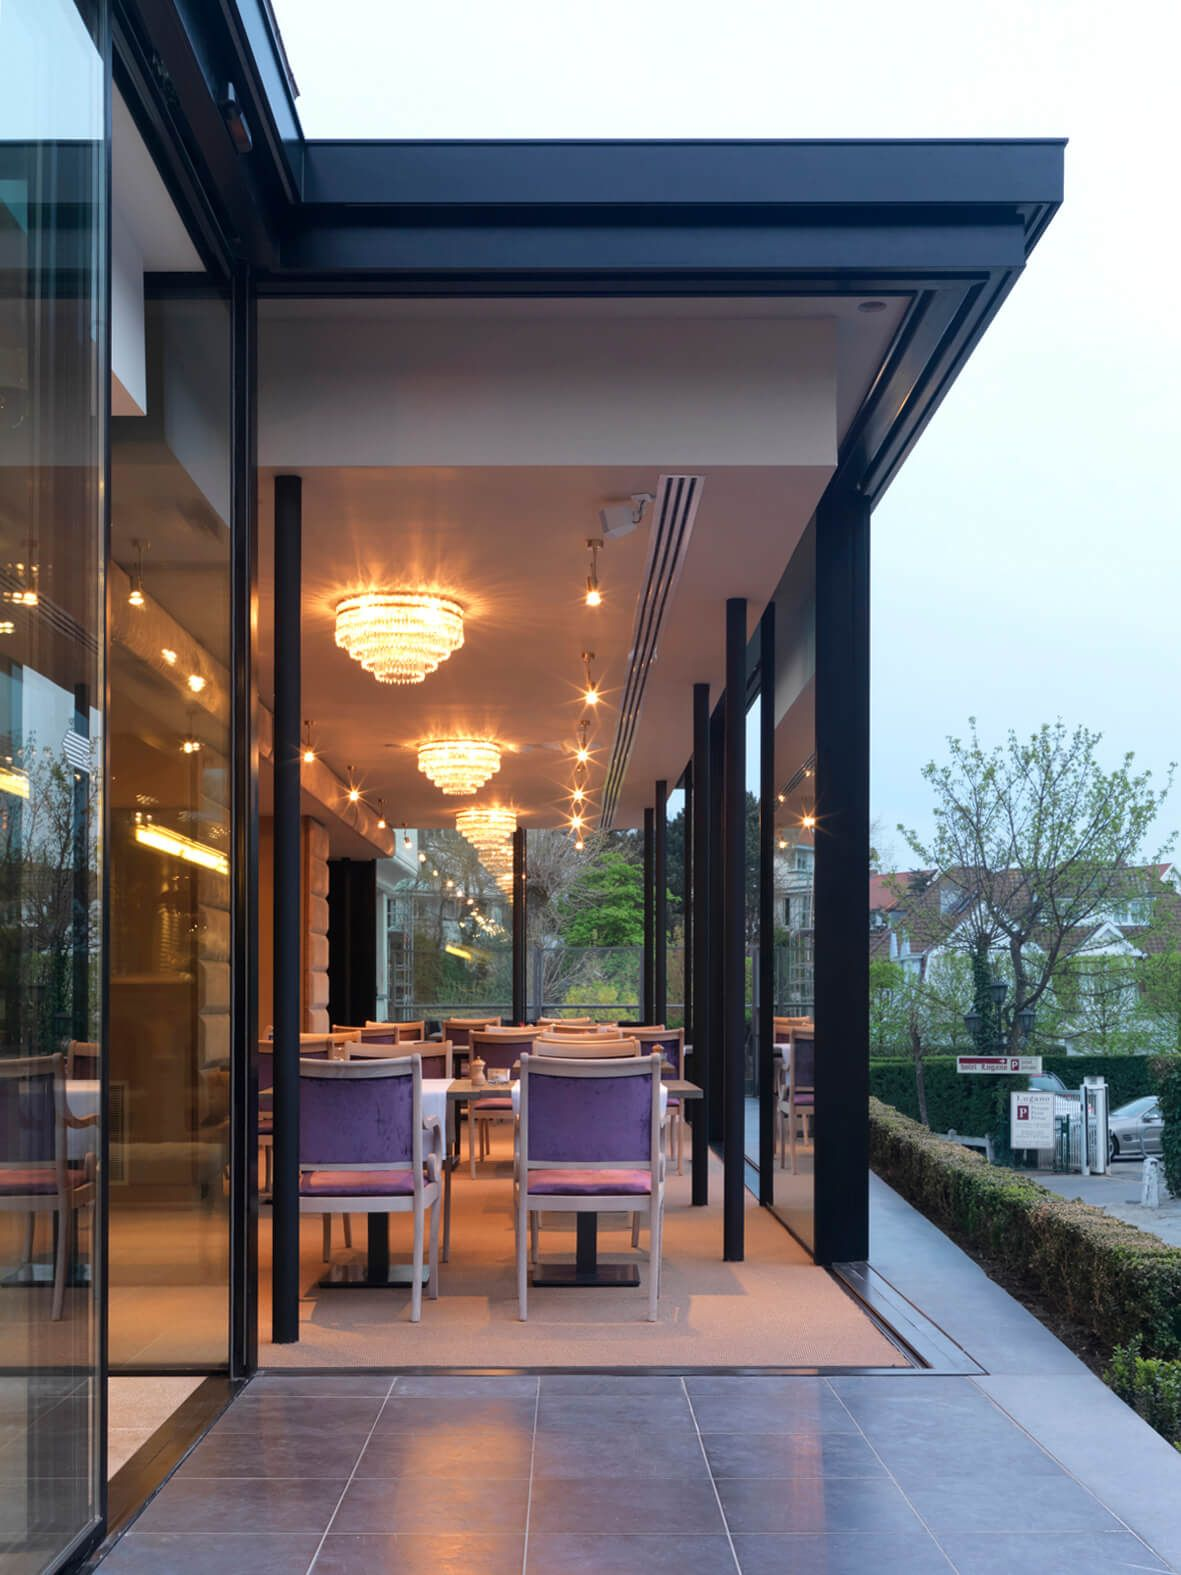 Business Design A House And Window: Minimal Windows Open Corner Sliding Doors Create A Beautiful Indoor/outdoor Appearance To This